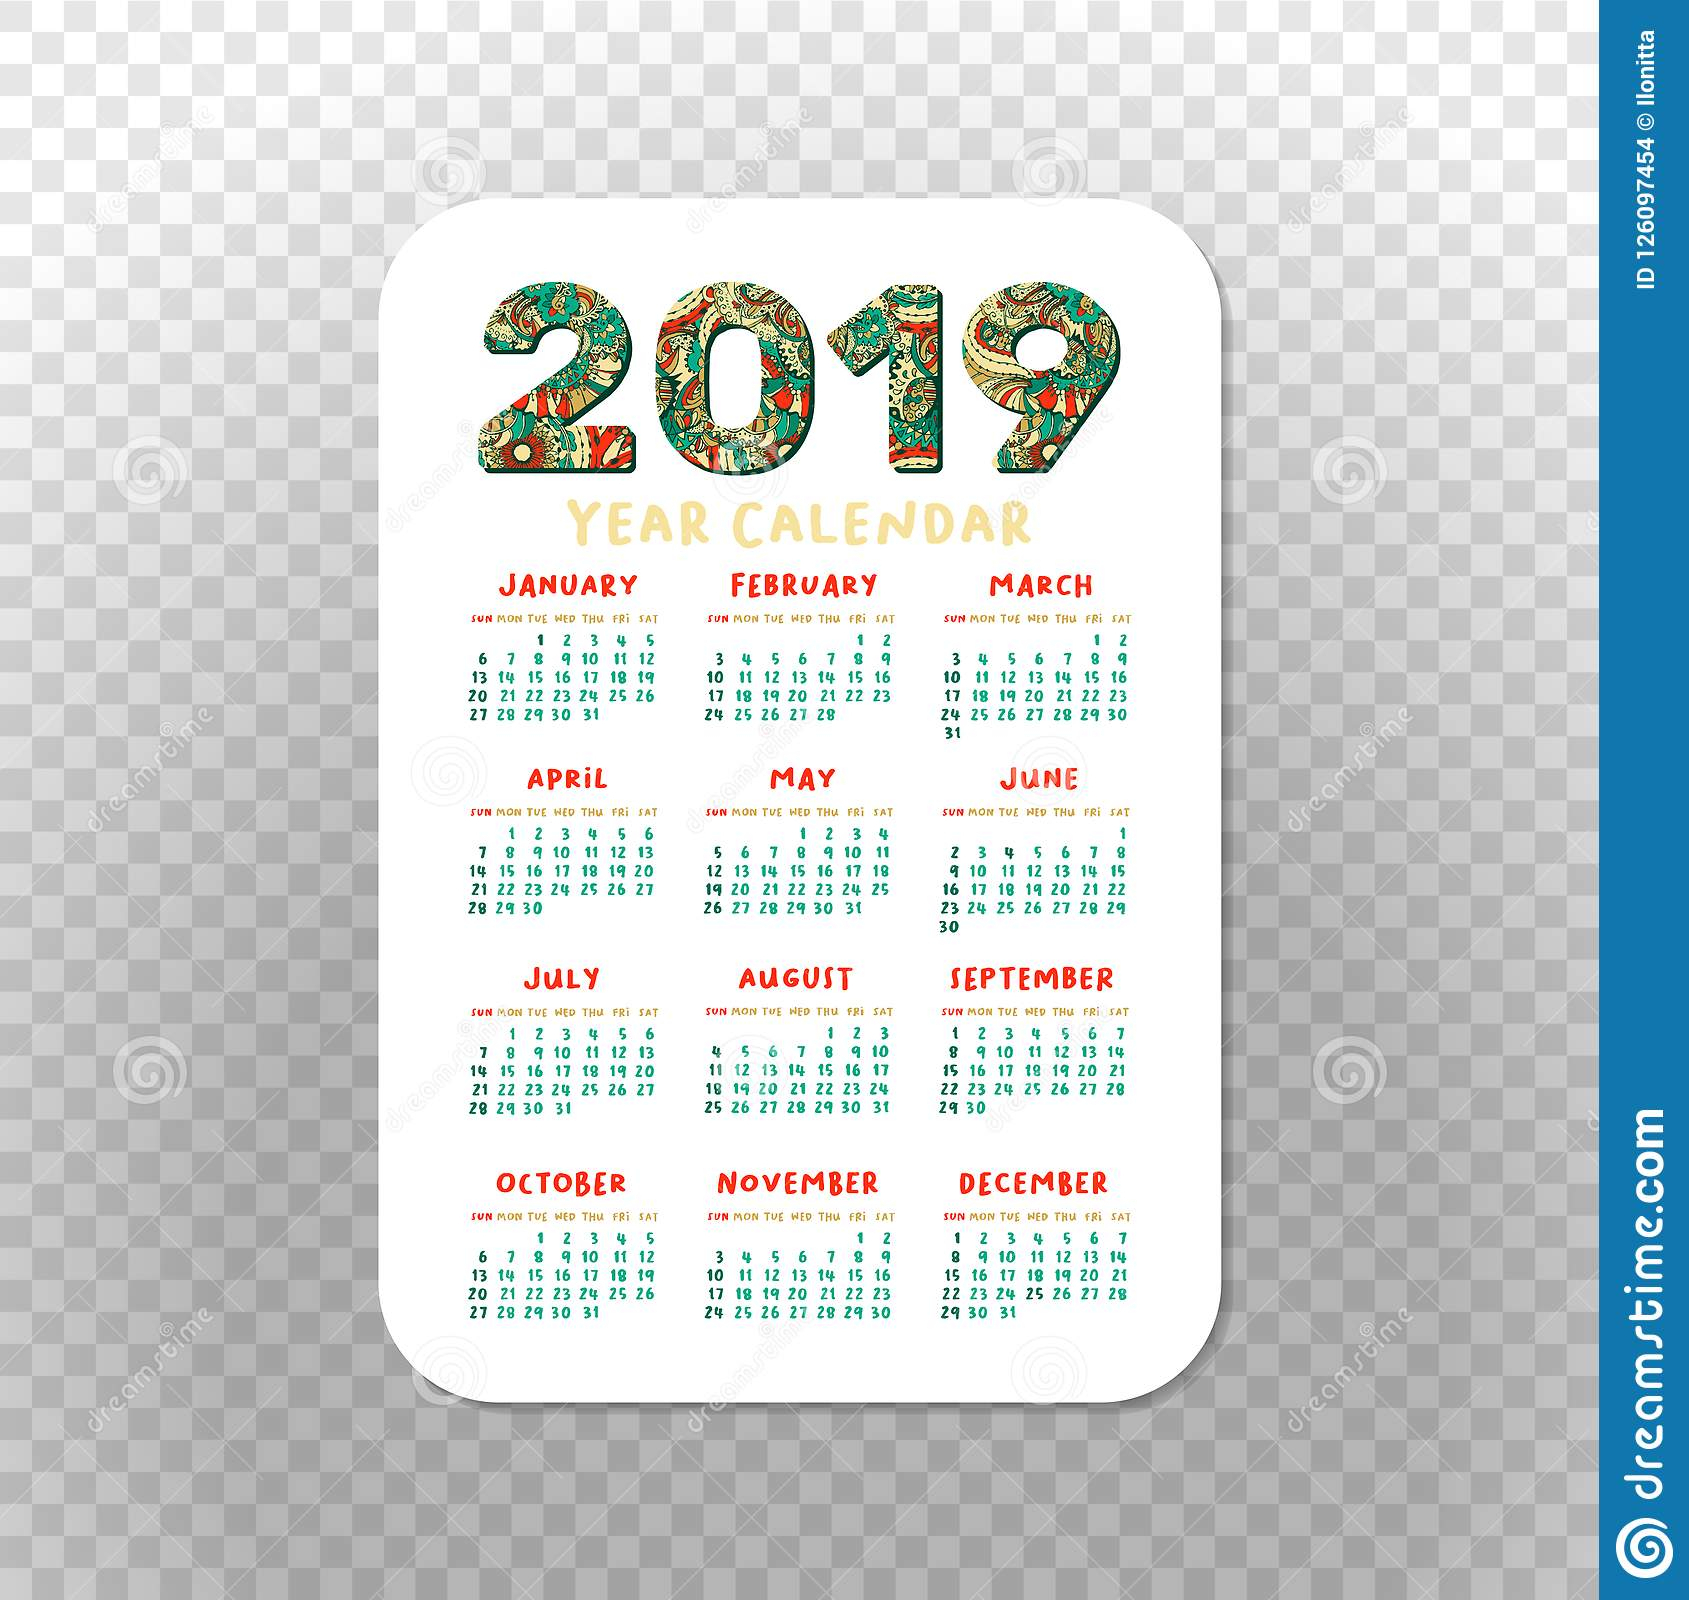 2019 Calendar Template For Pocket Calendar, Basic Grid intended for Free Printable Pocket Size Calendars